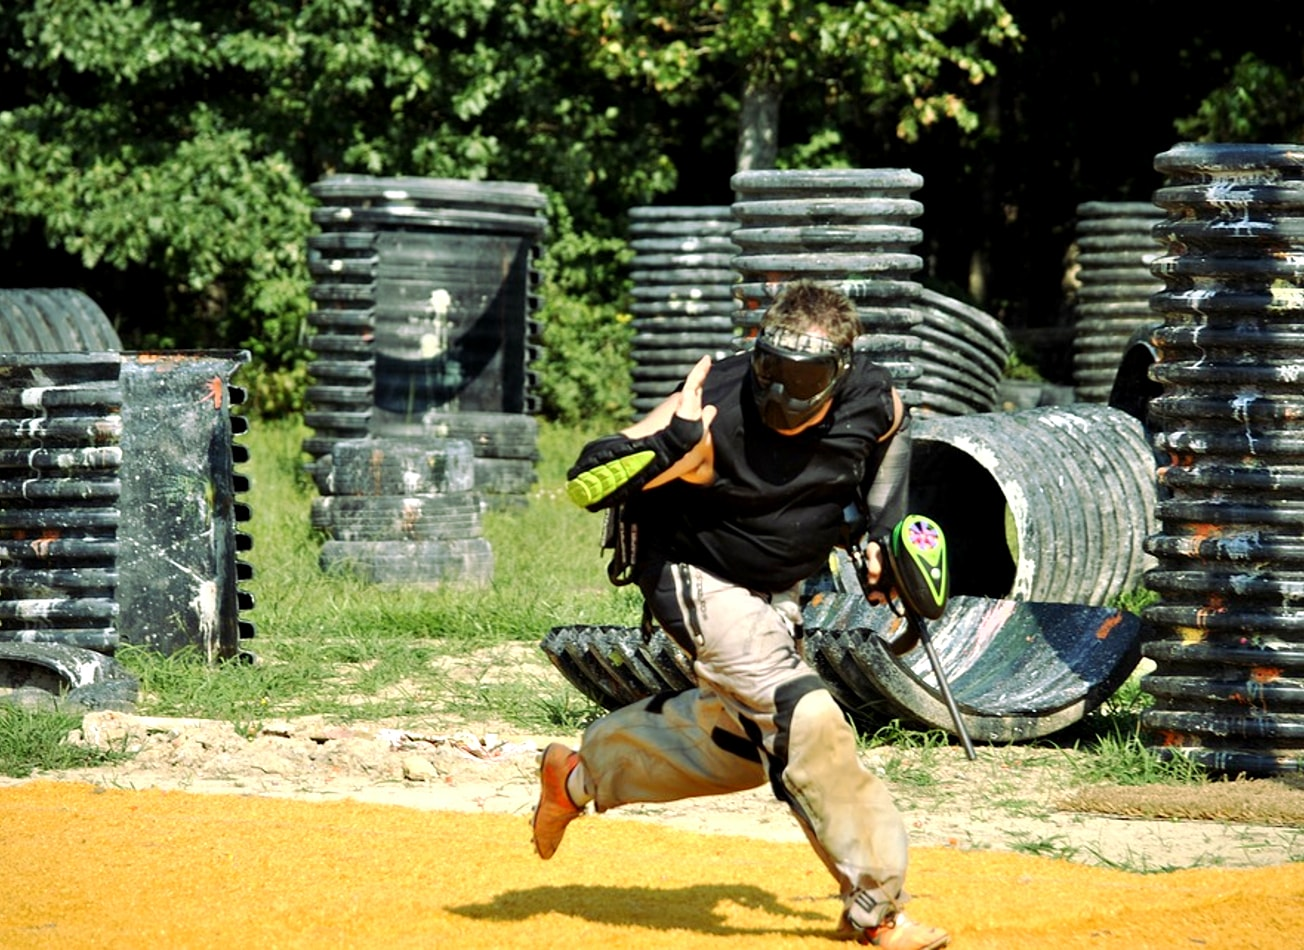 paintball indoor outdoor exterieur plein air milan activites vimigo